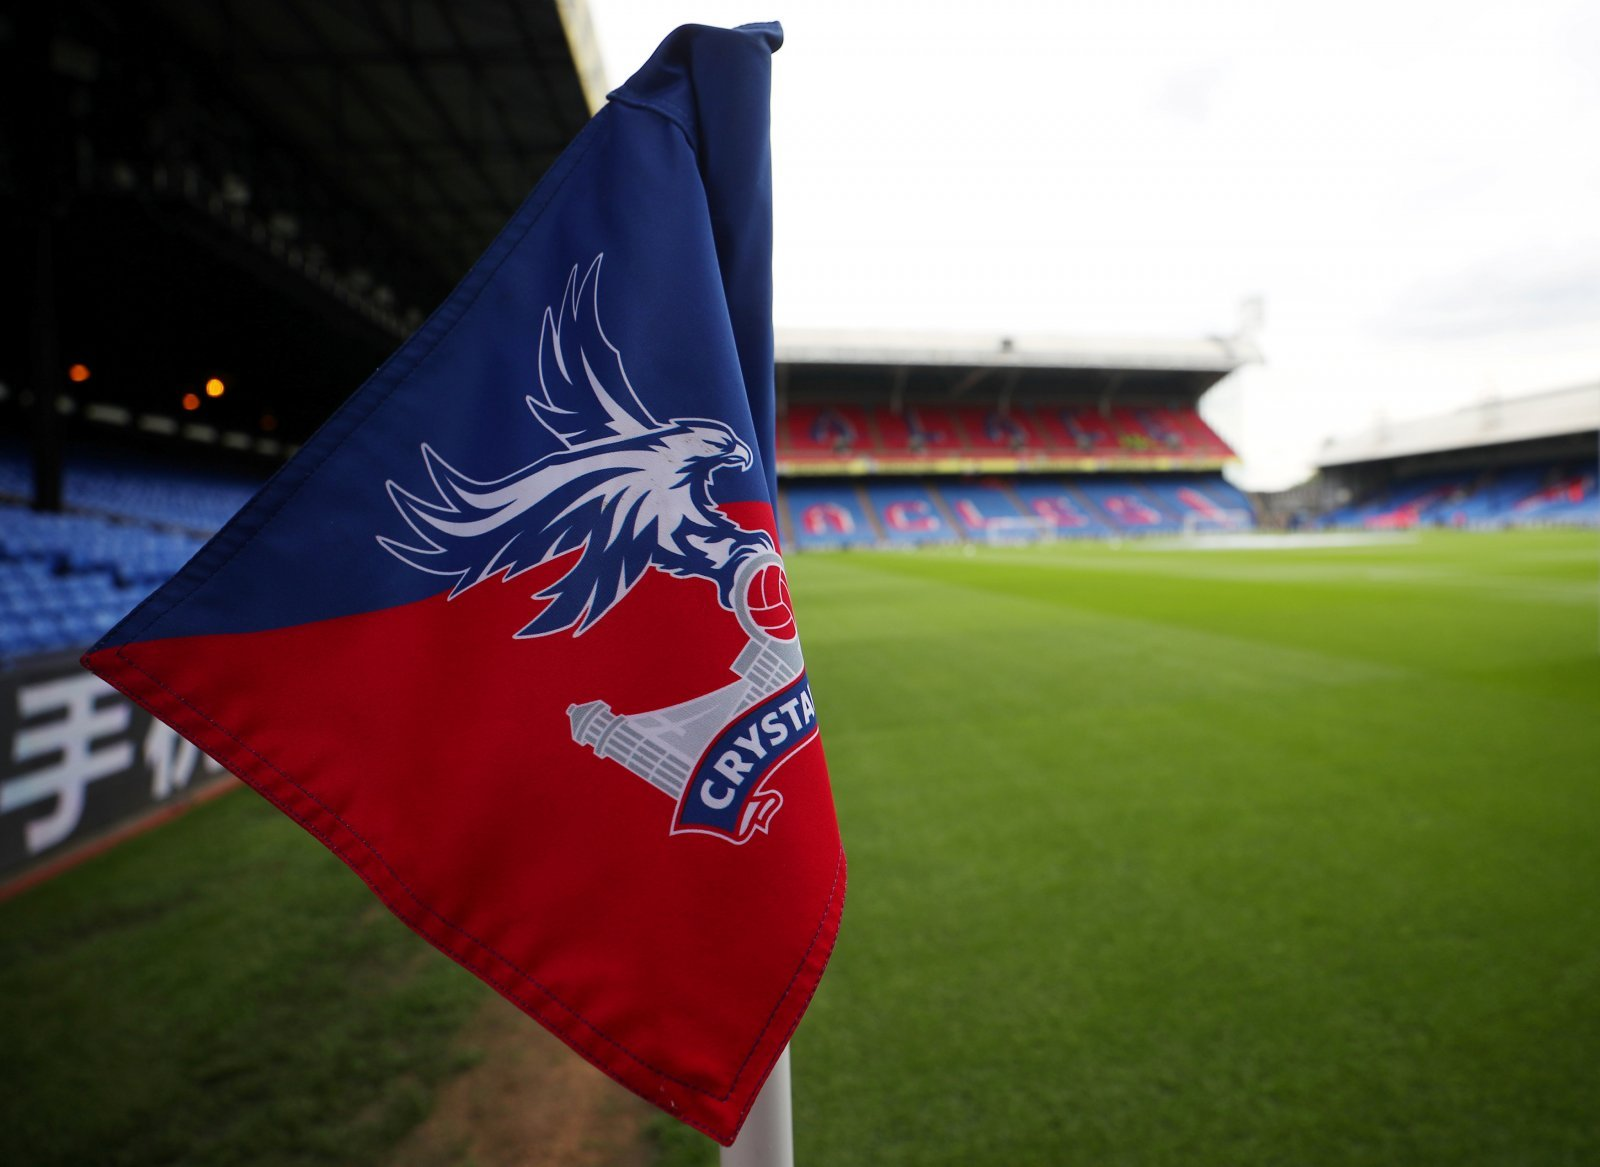 Crystal Palace: Two fixtures standout ahead of 2019/20 season